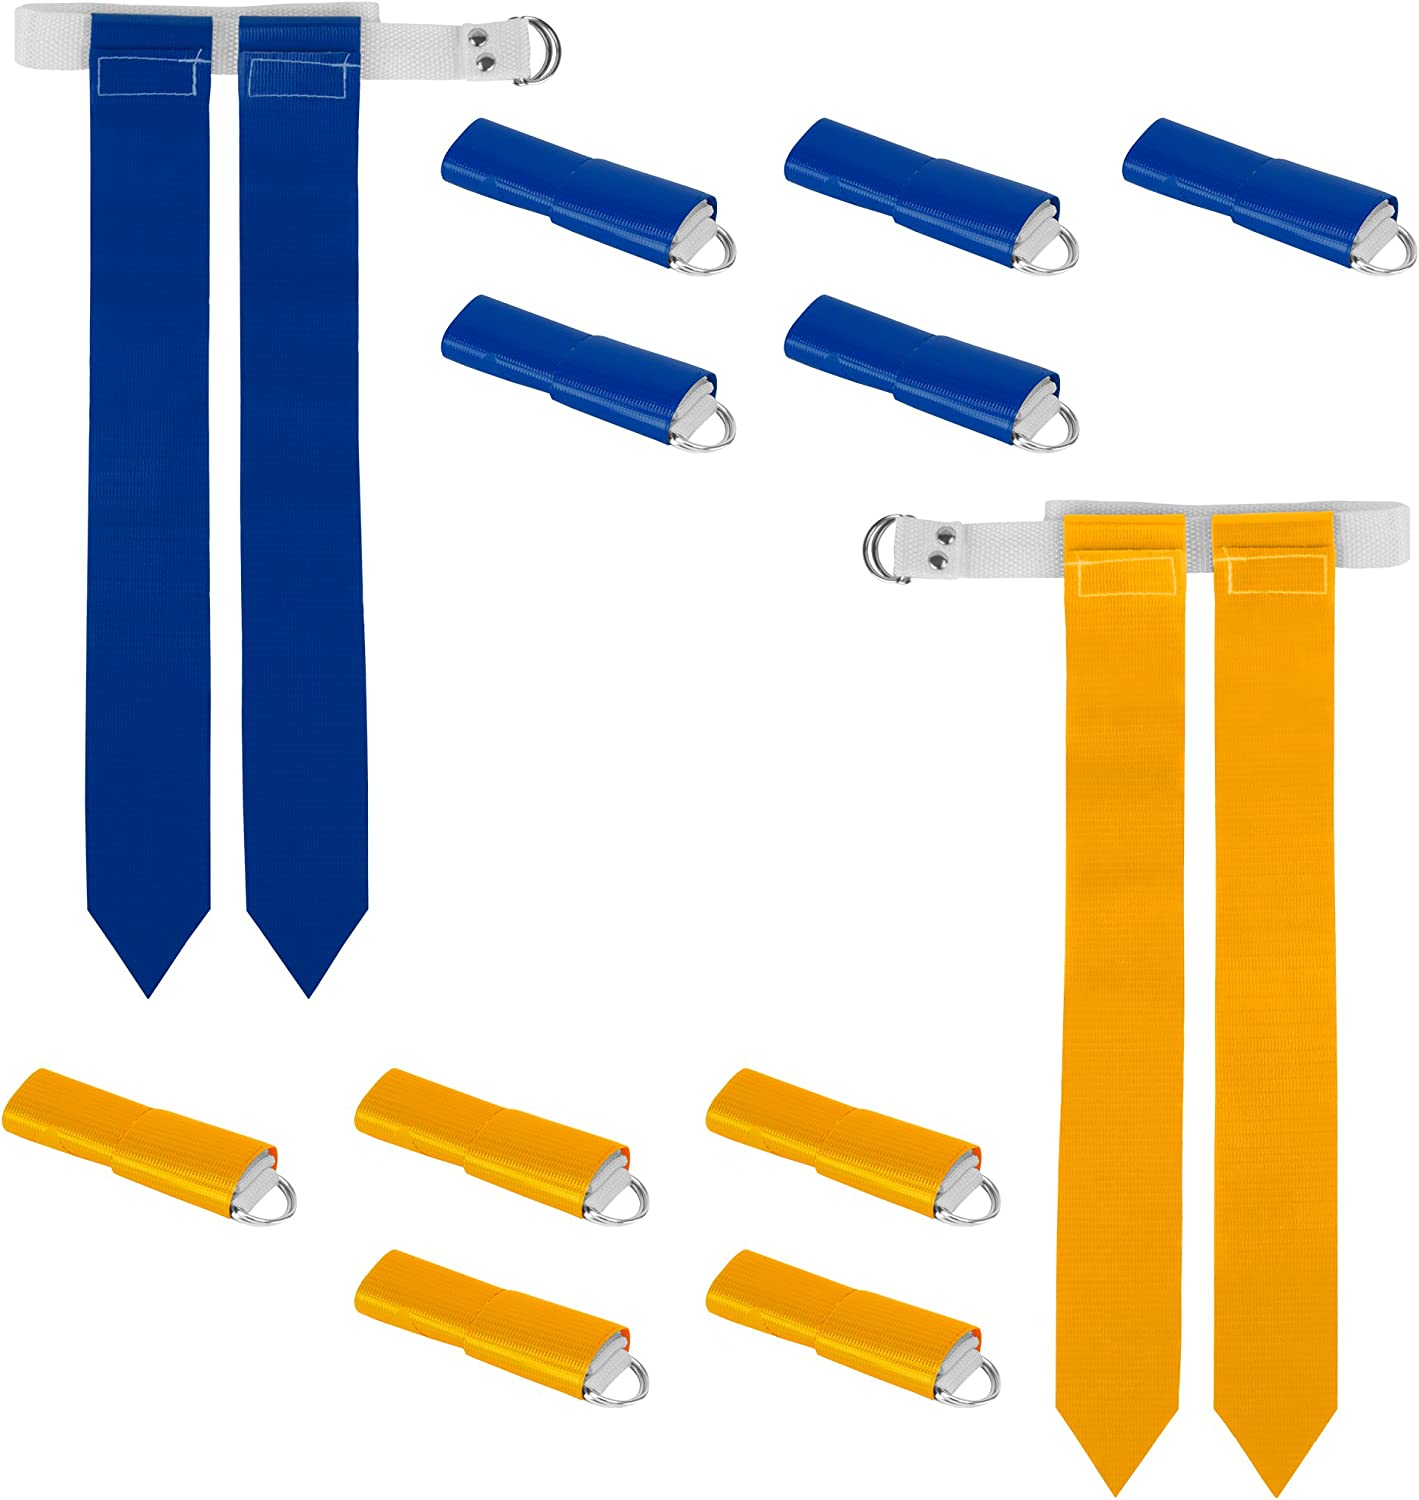 12-Pack Popularity Flag Football Team Set Max 89% OFF – Belts 24 with Includes 12